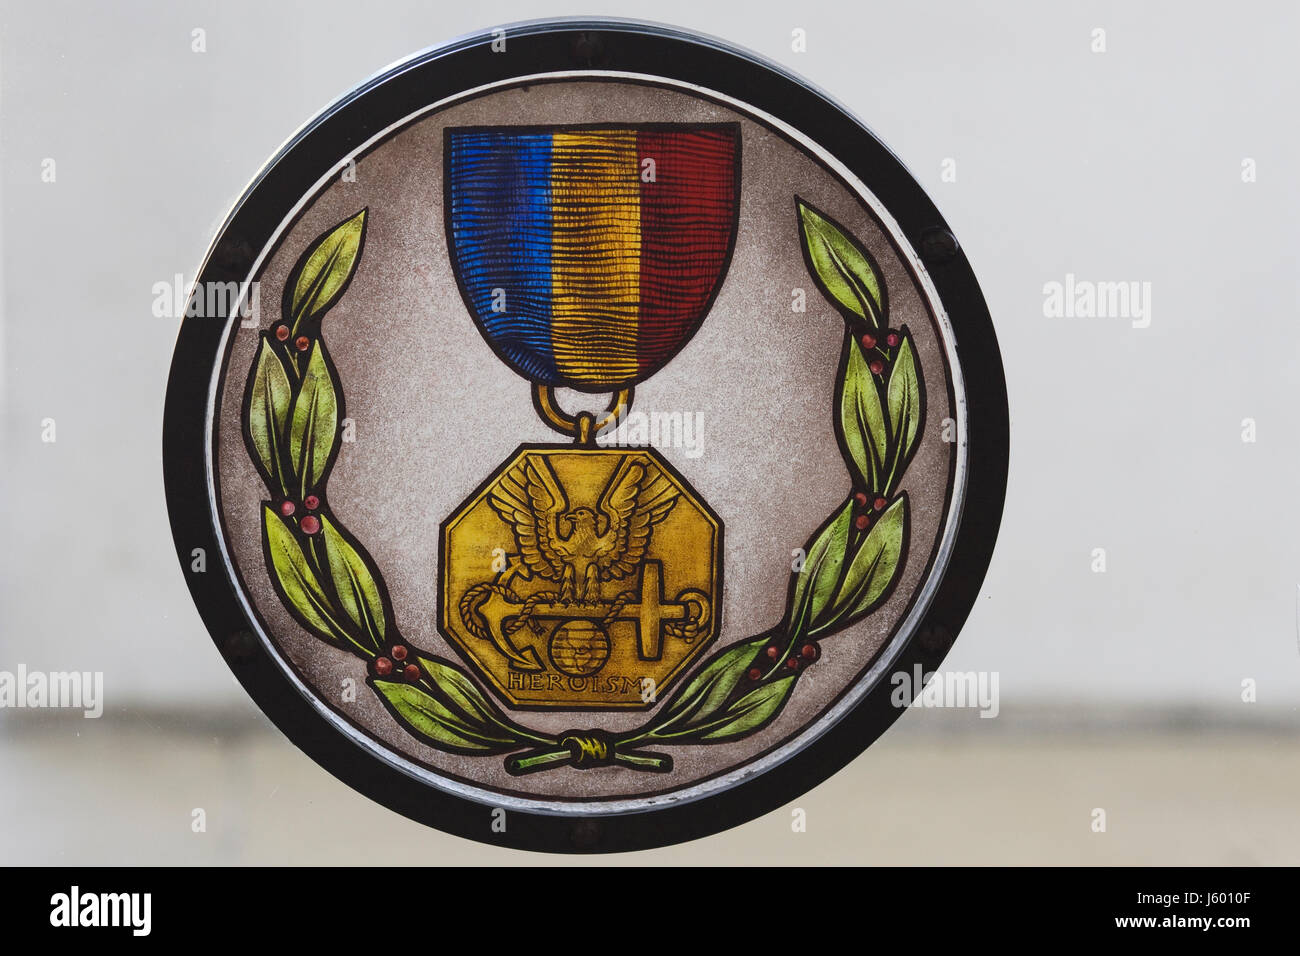 Remembrance of the American Armed forces, Medal of heroism - Stock Image